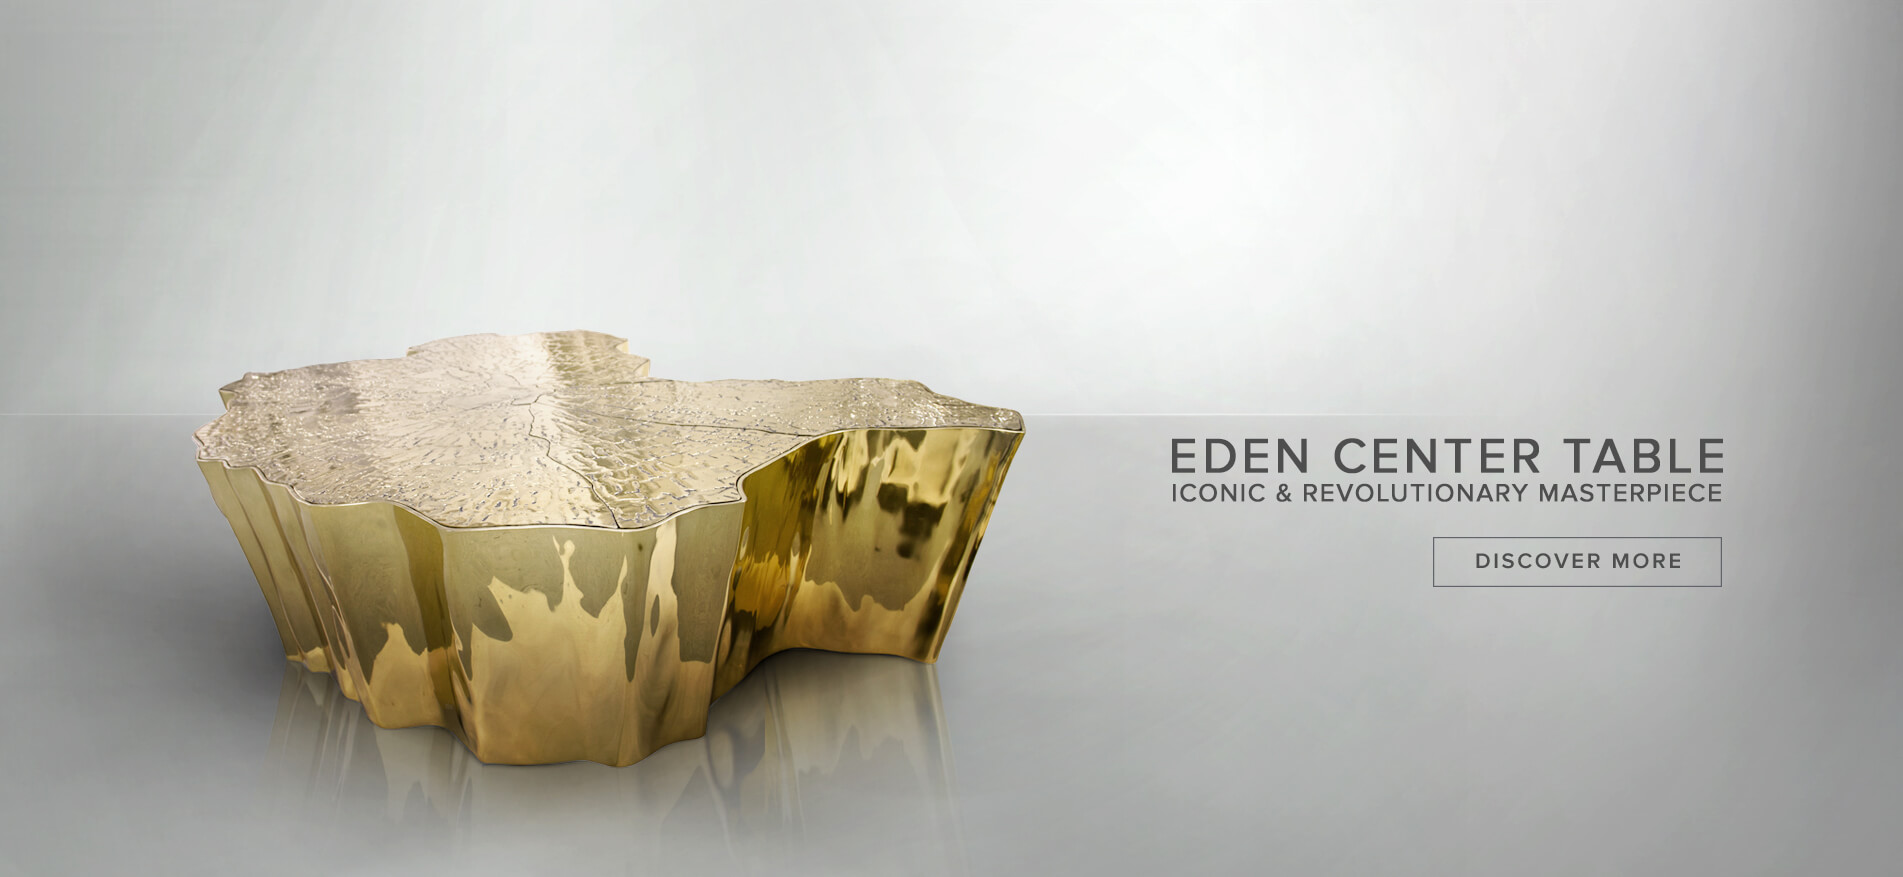 Eden Center Table by Boca do Lobo